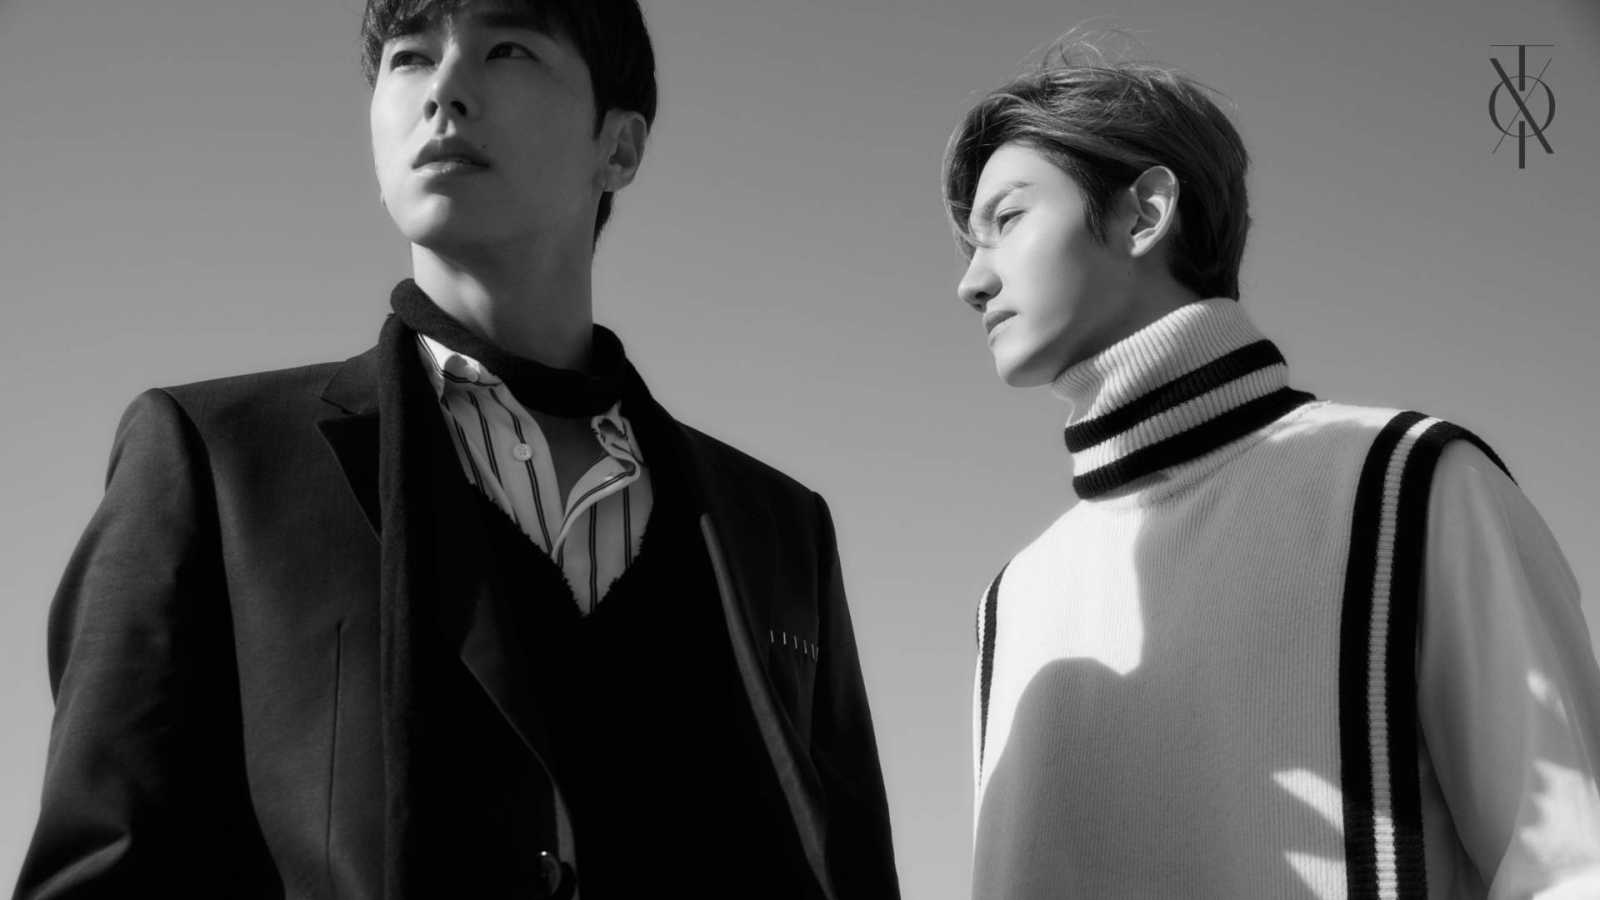 Mitä kuuluu, TVXQ? © SM Entertainment Co., Ltd. All rights reserved.